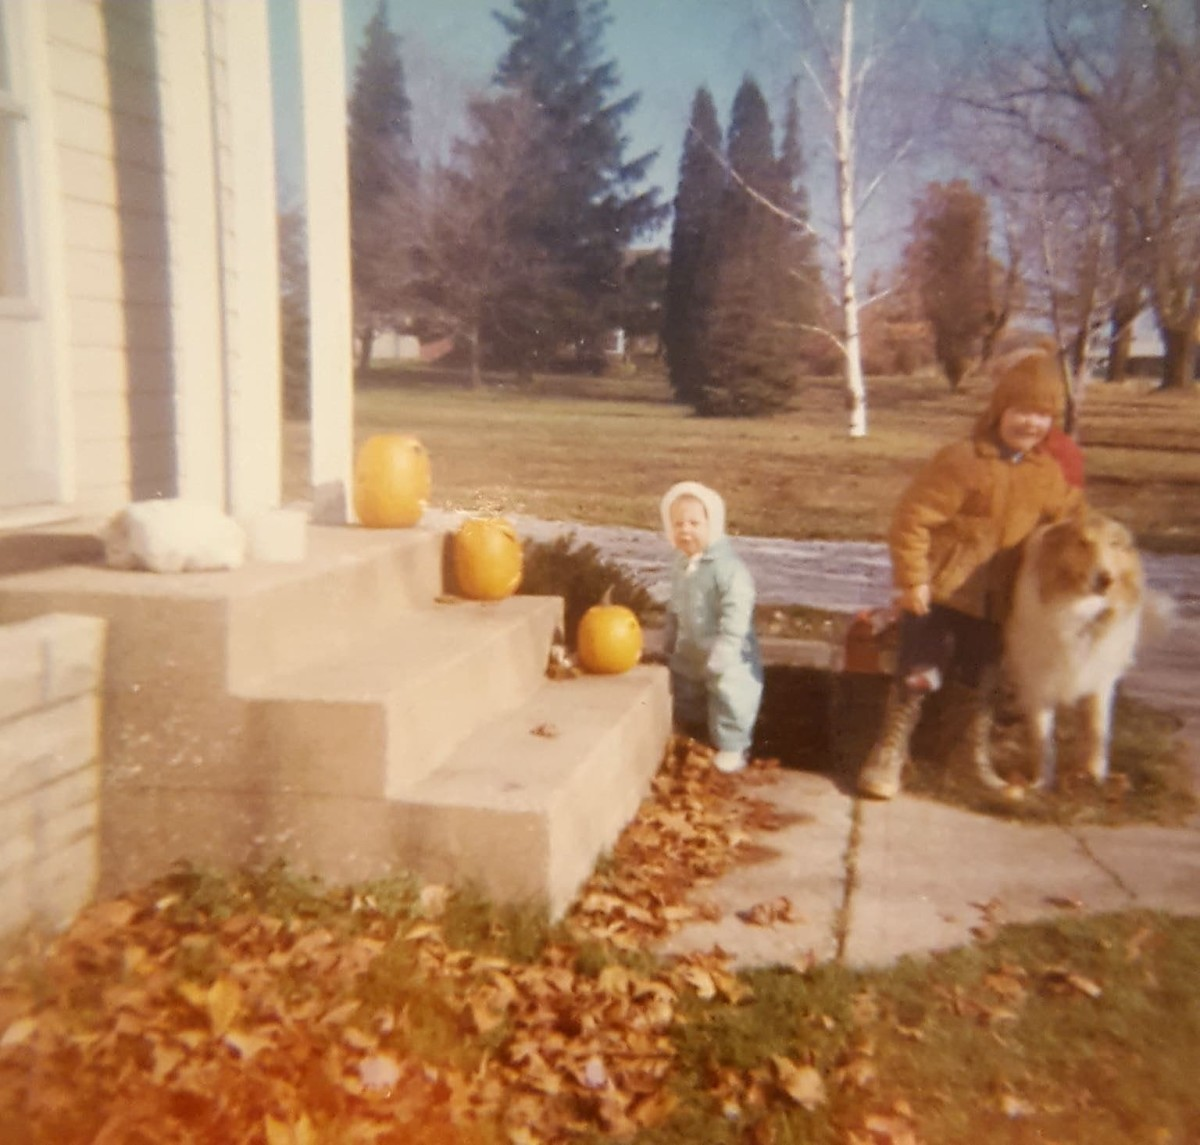 My Boyhood Collie, Sparky, with the neighbor's child